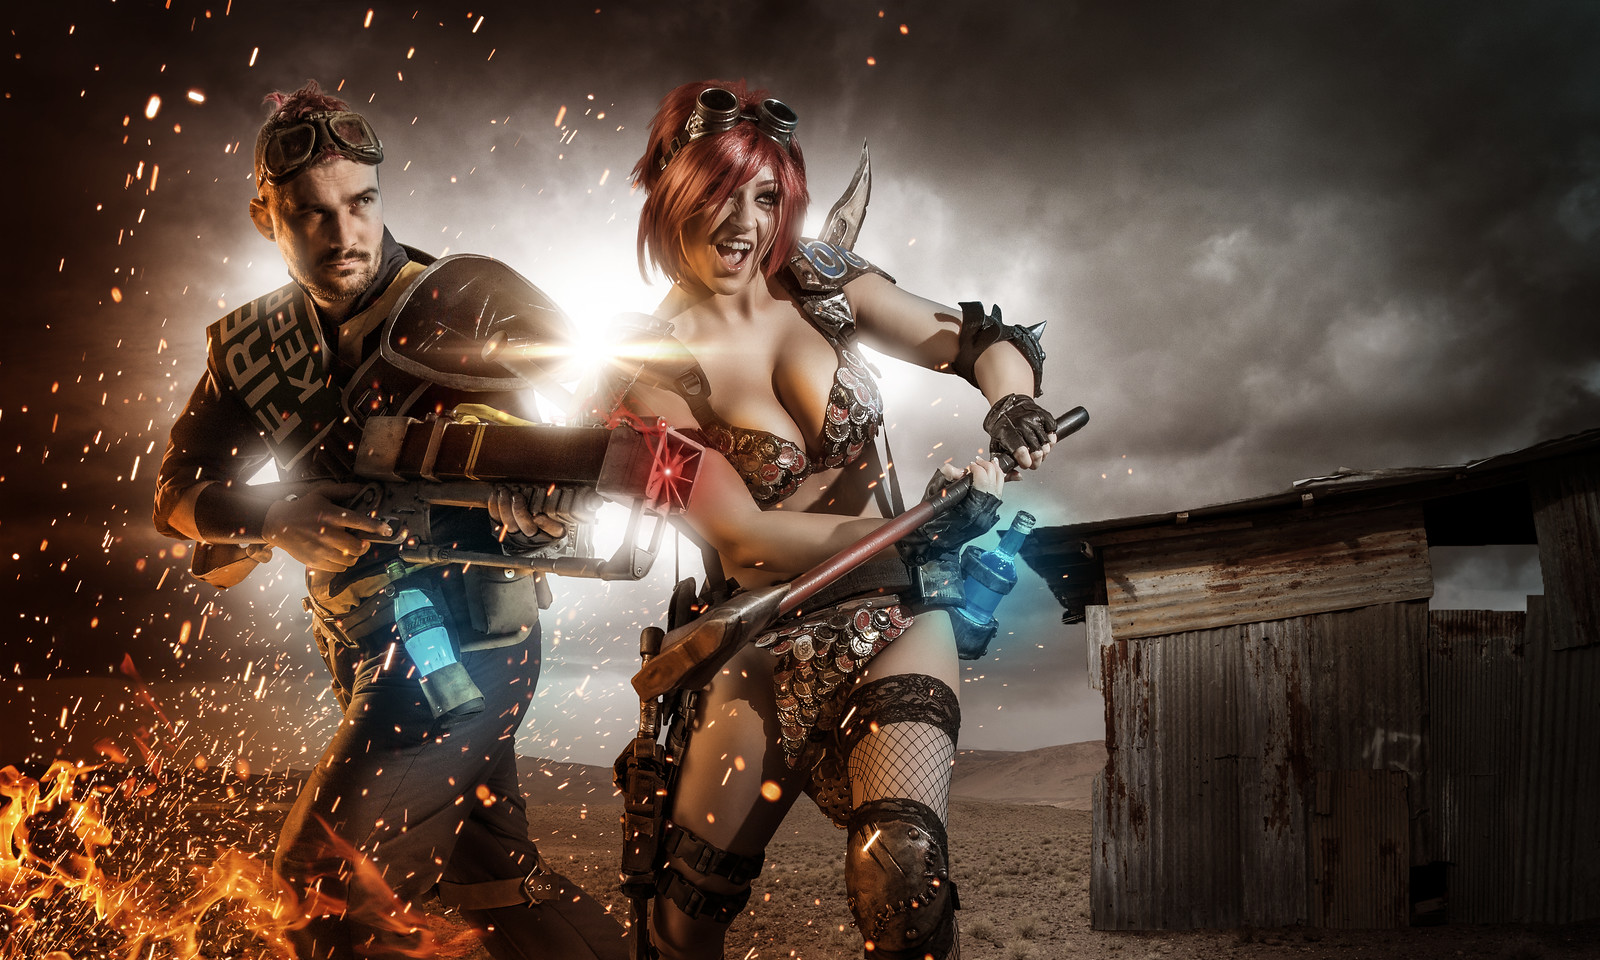 Fallout 4 Cosplay Running Battle Starring TabithaArtyFakes and Valentine Cosplay by Creative Edge Studios